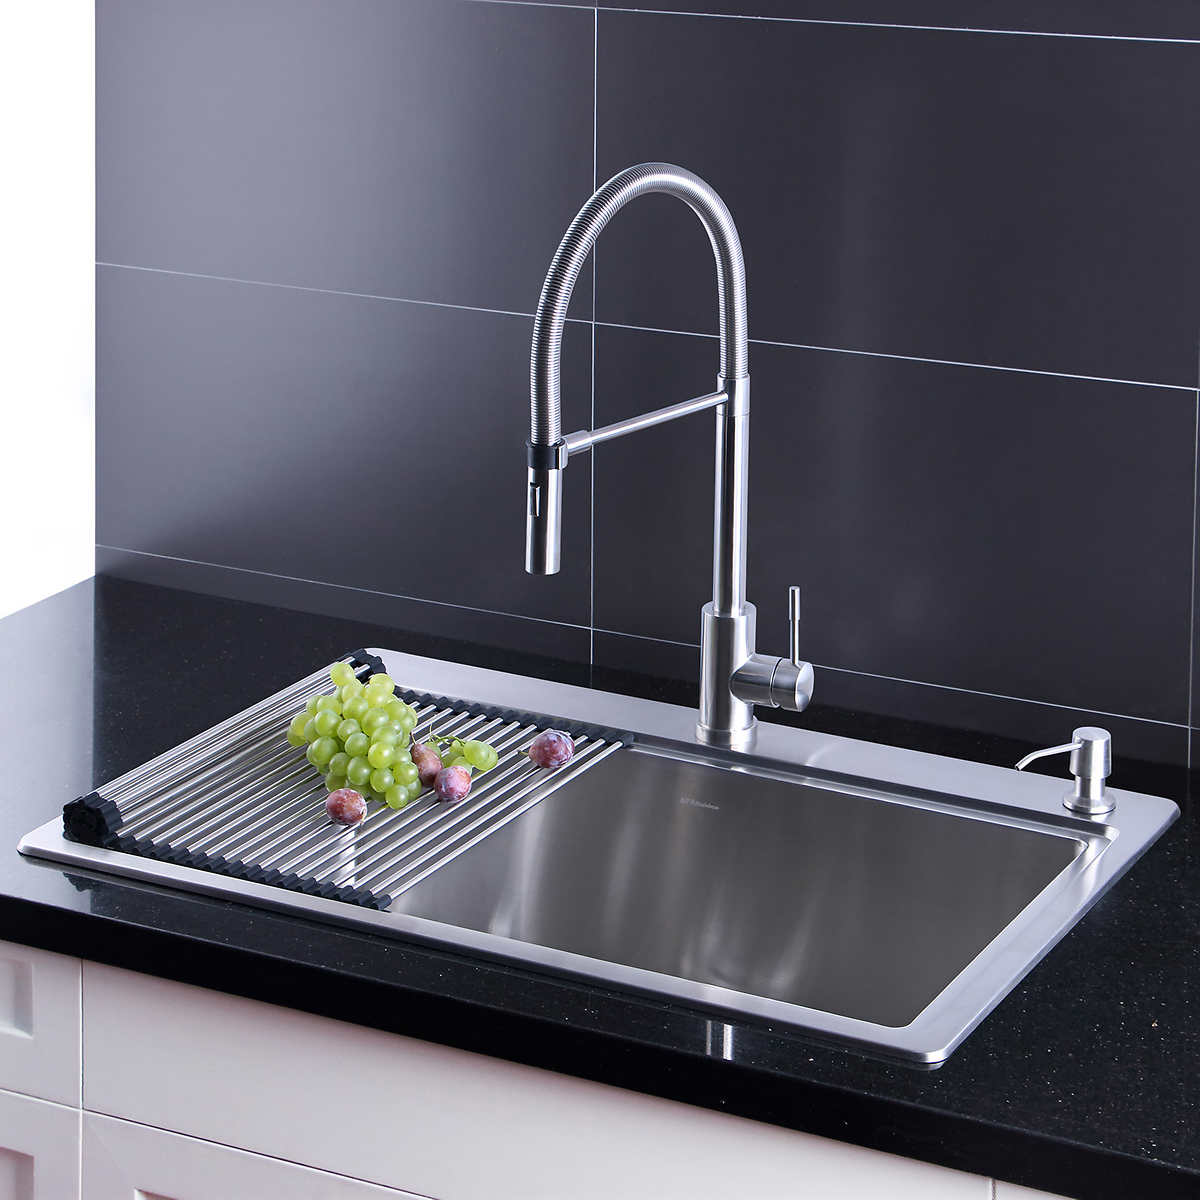 AFA Stainless 12-inch Sink and Semi Pro Faucet Combo